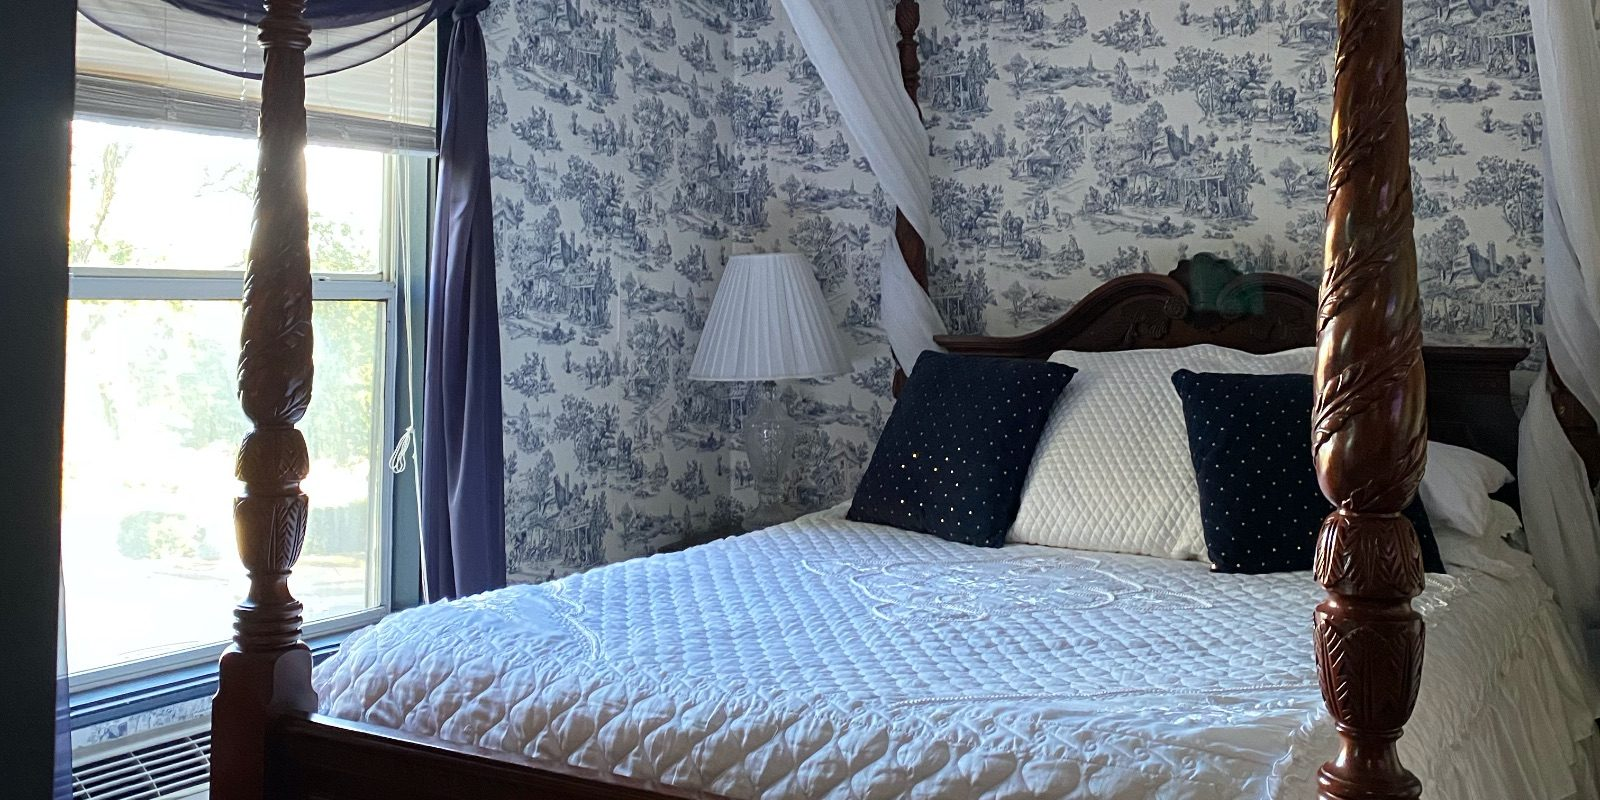 A bed inside the English Spa suite at the Woodstock Inn Bed & Breakfast in Independence, MO